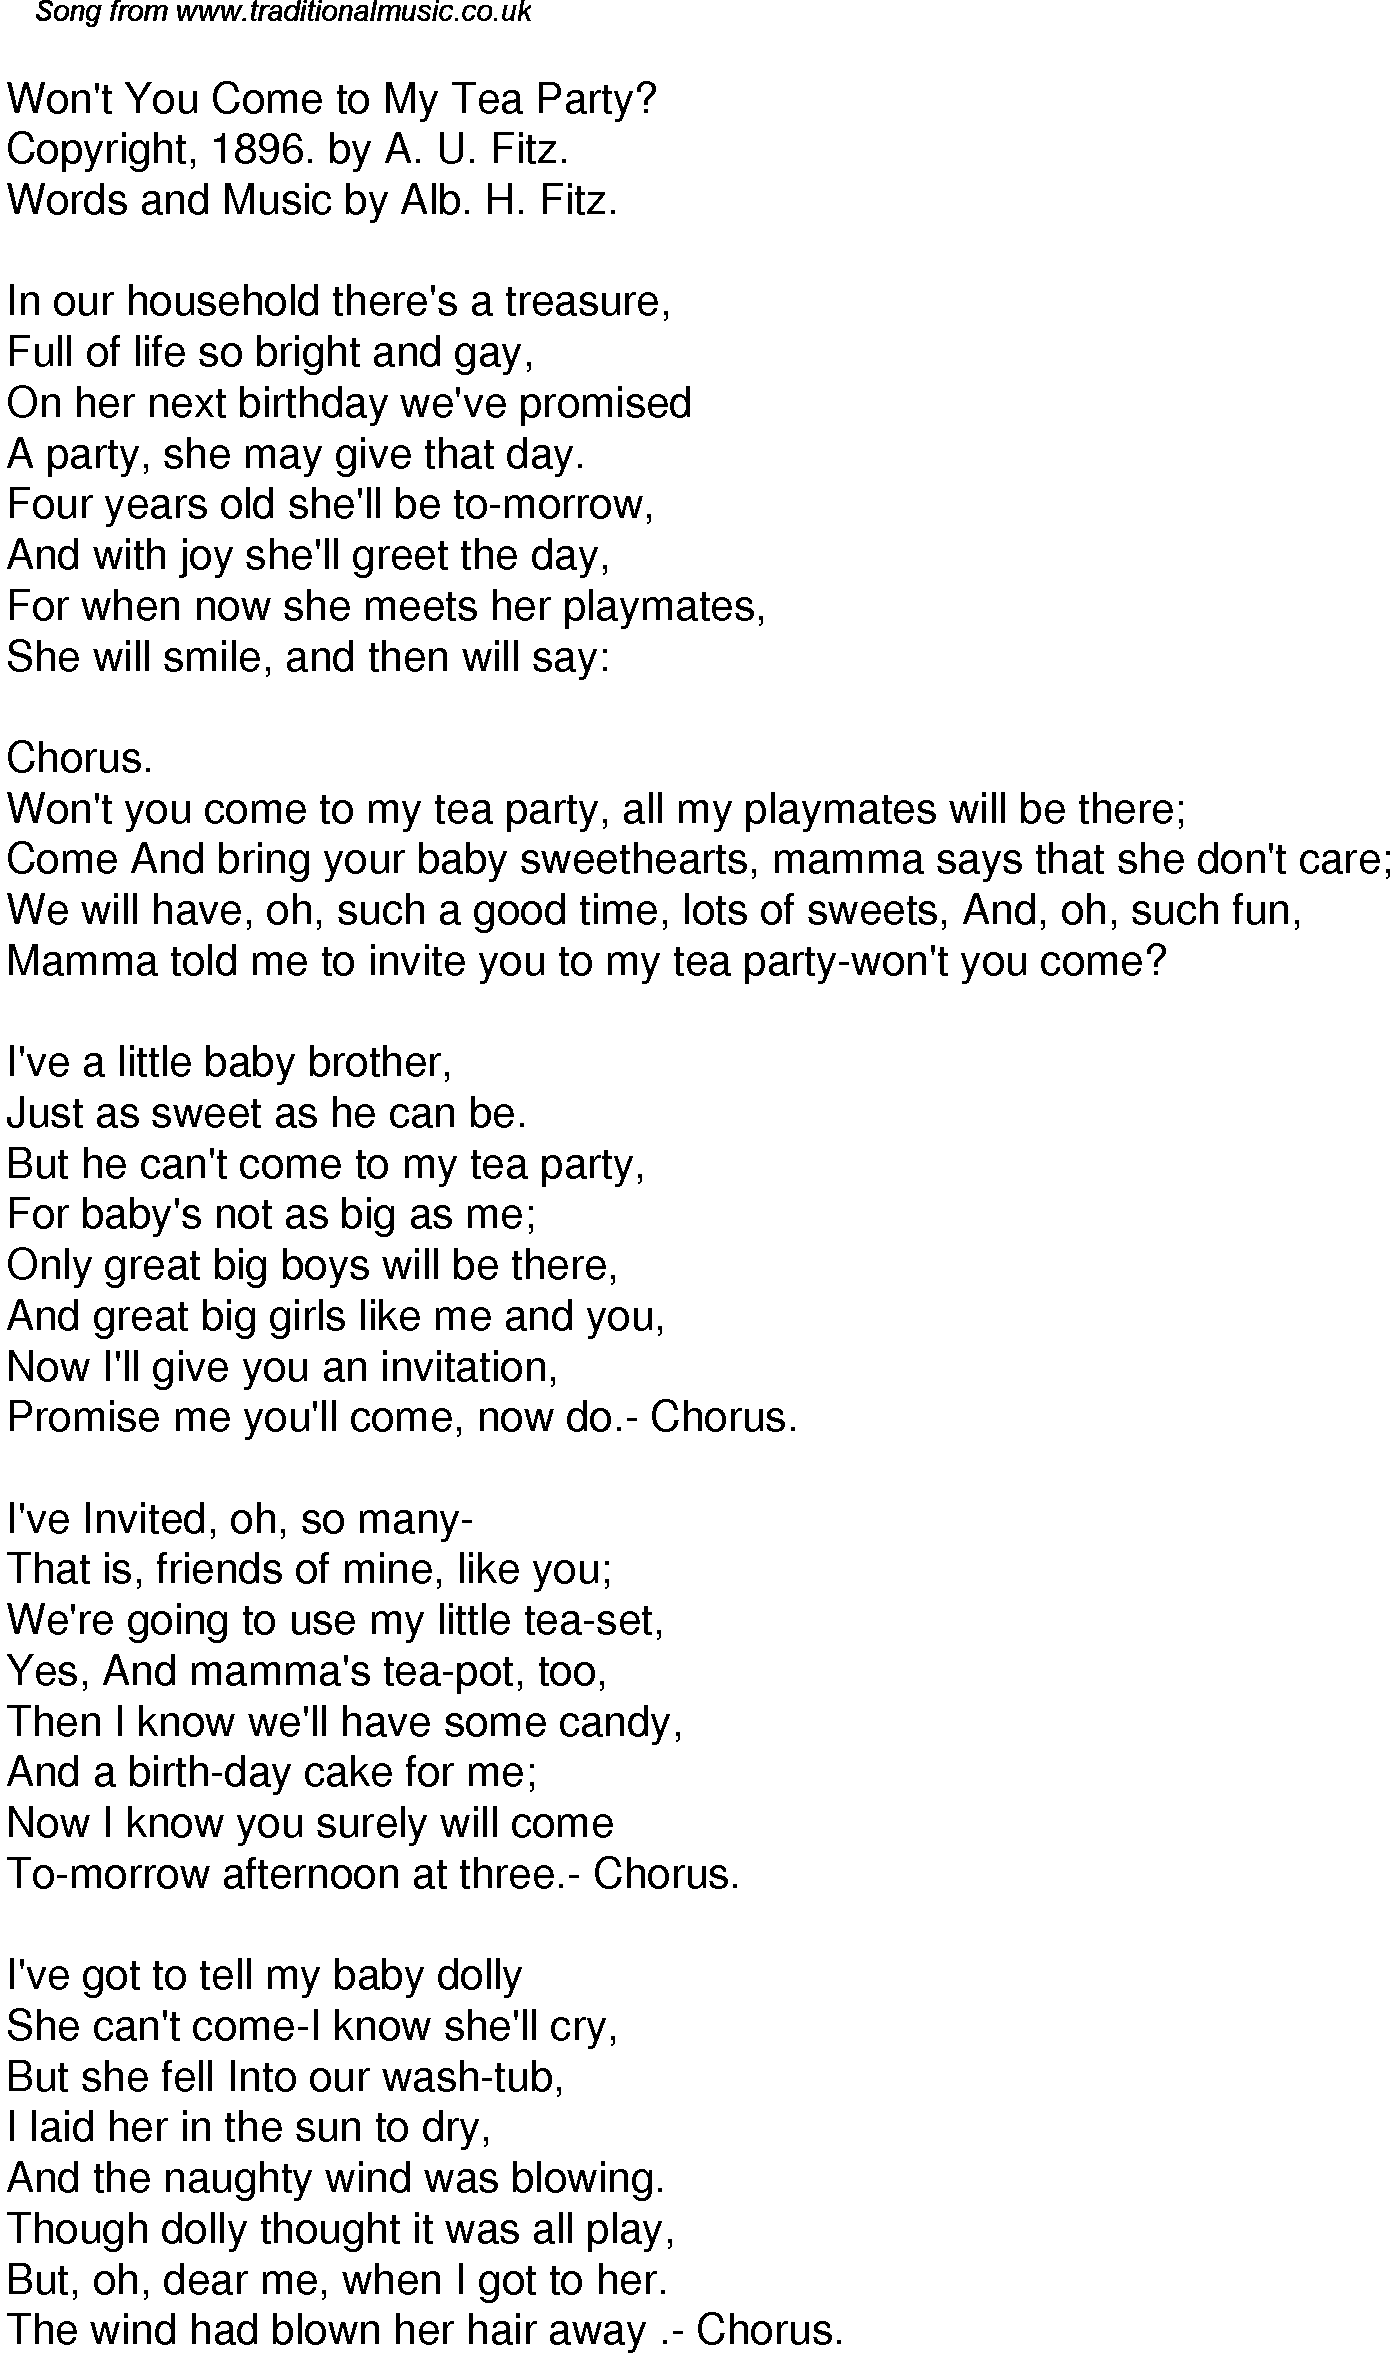 Old time song lyrics for 54 wont you come to my tea party download music lyrics as png graphic file stopboris Gallery